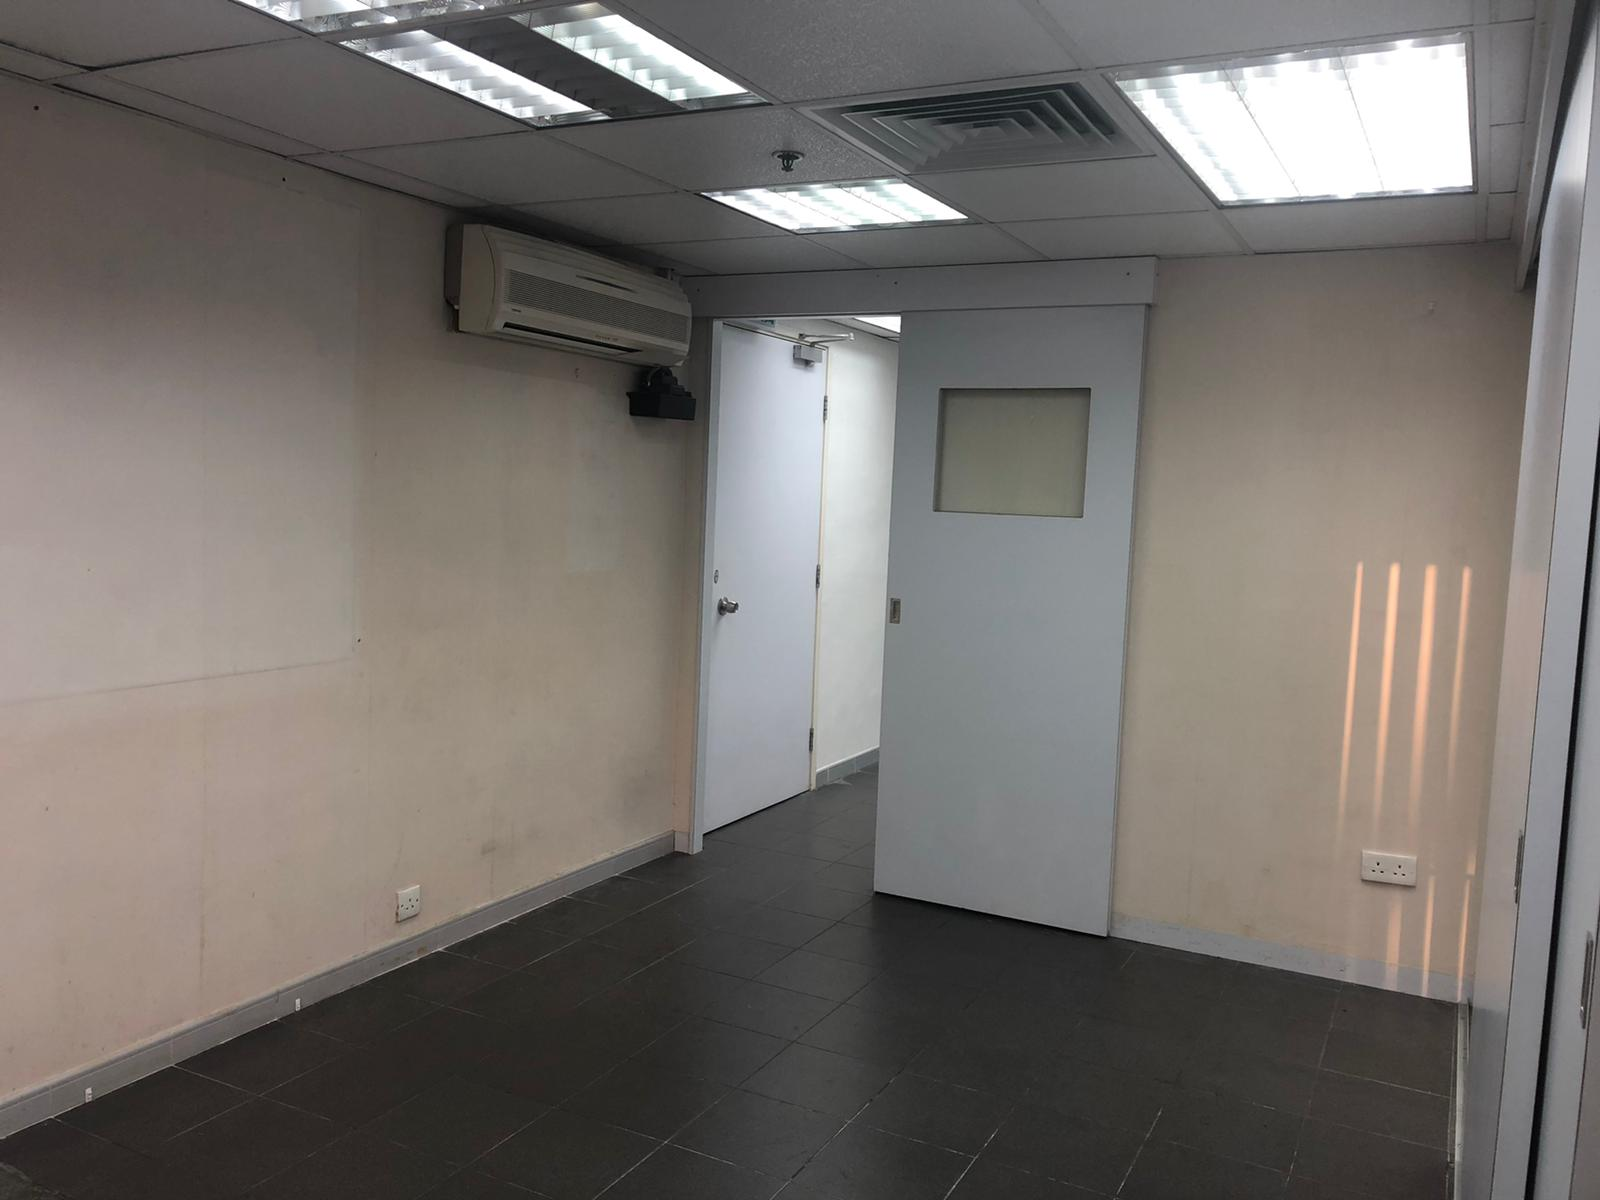 [Hung Hom Office] Yun Tat Commercial Building, Lower Floor, /w Tenancy